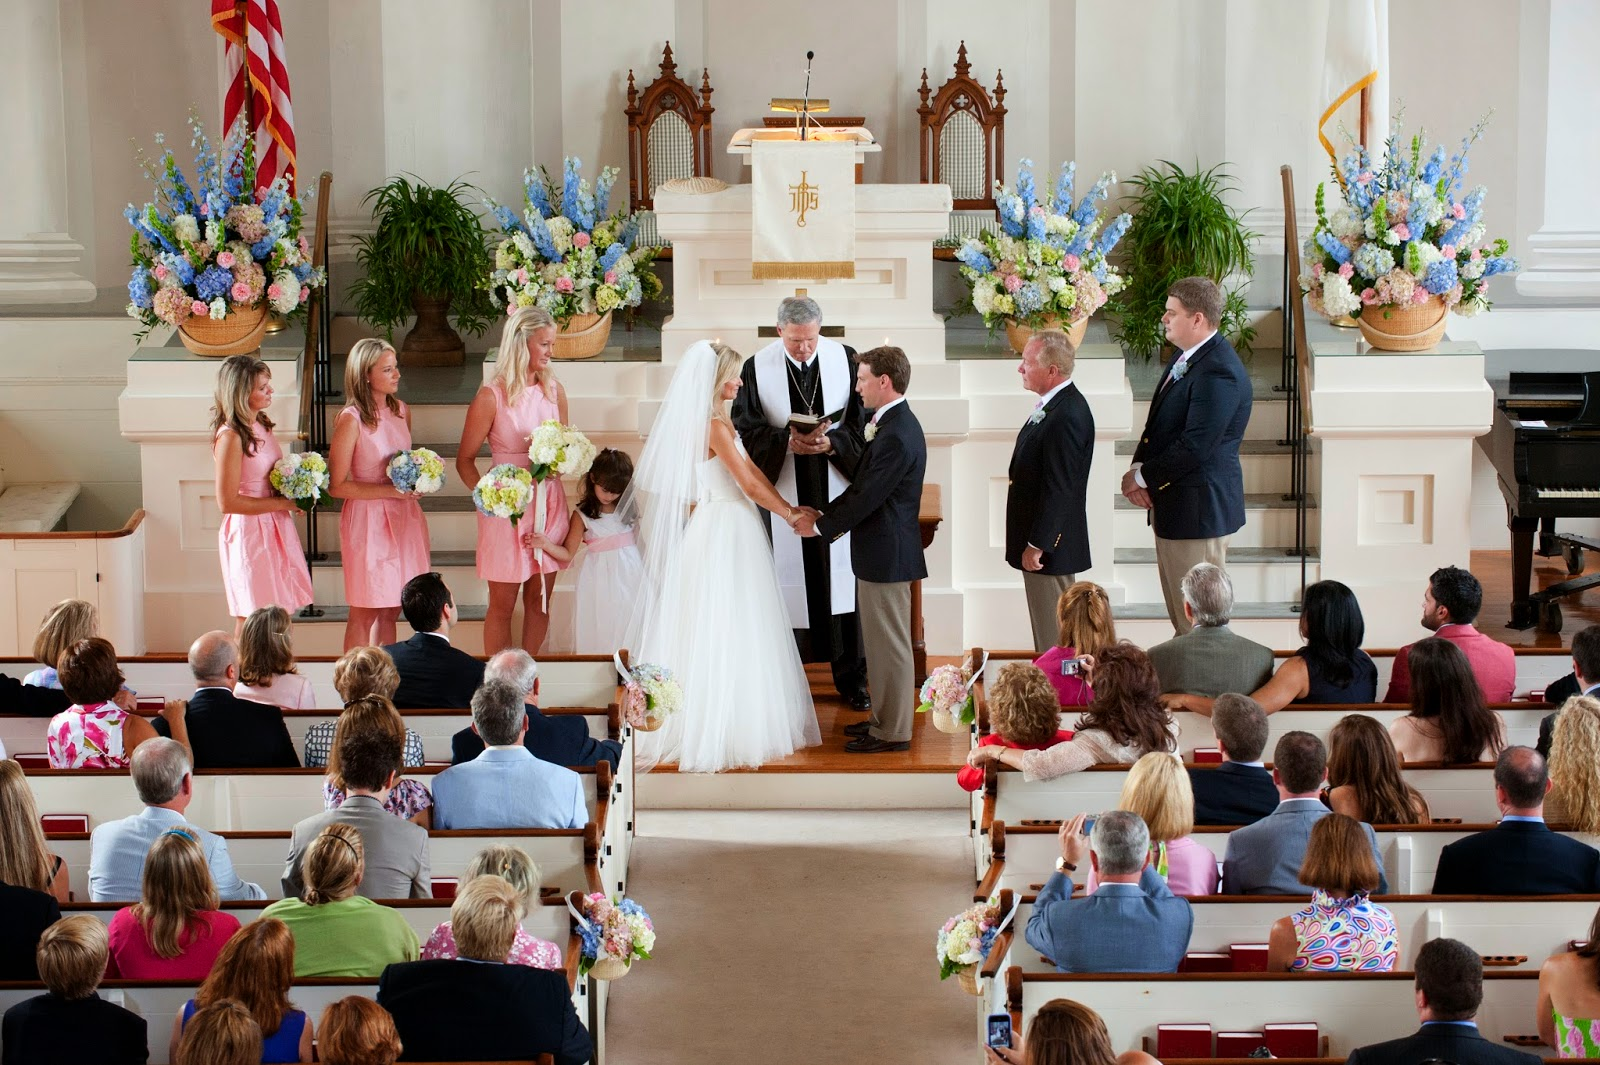 Wedding Ceremonies Idea